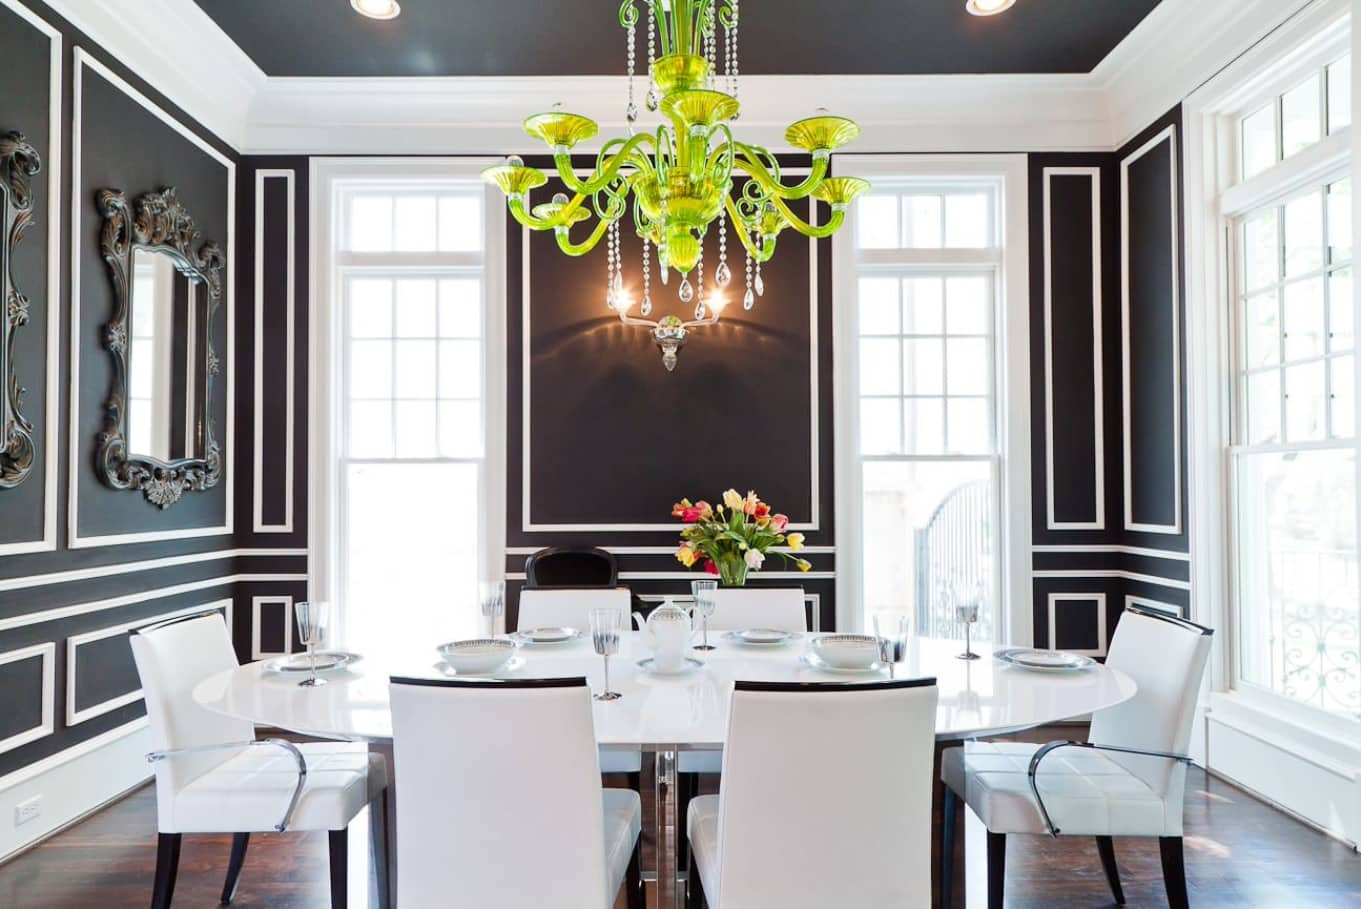 Black Dining Room Walls Effective Ideas for Authentic Interior. Unusual contrasting Classic style interpretation for large room with white chairs and green chandelier